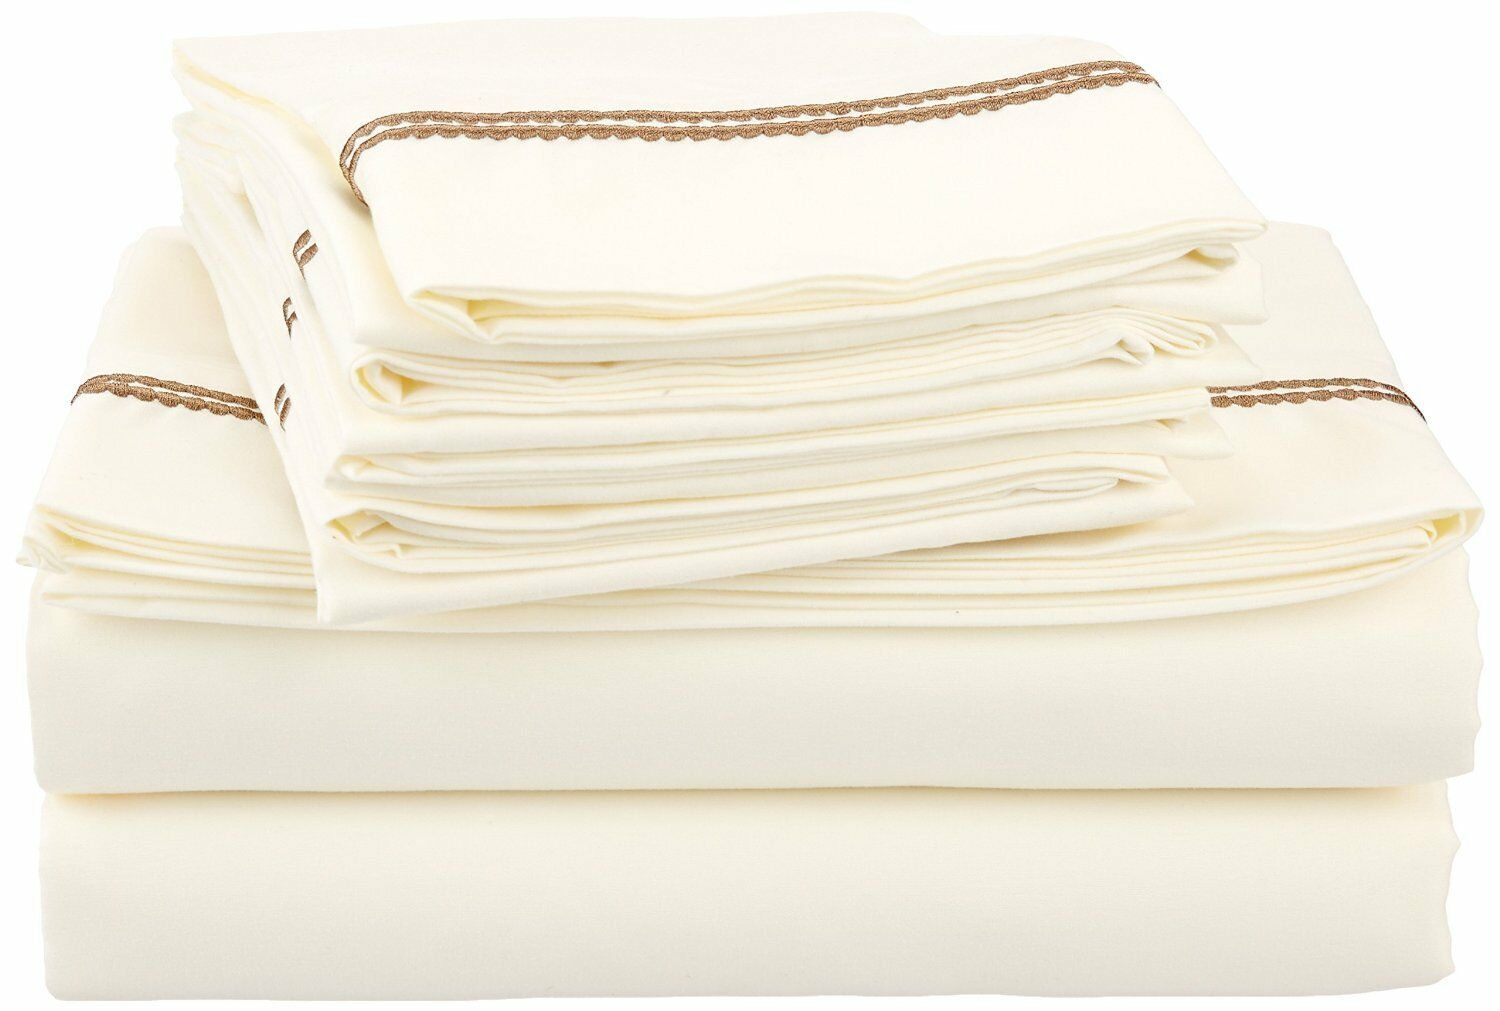 WRINKLE FREE 6PC SHEET SET SOLID-2 LINE EMBROIDERY-IVORY TAUPE